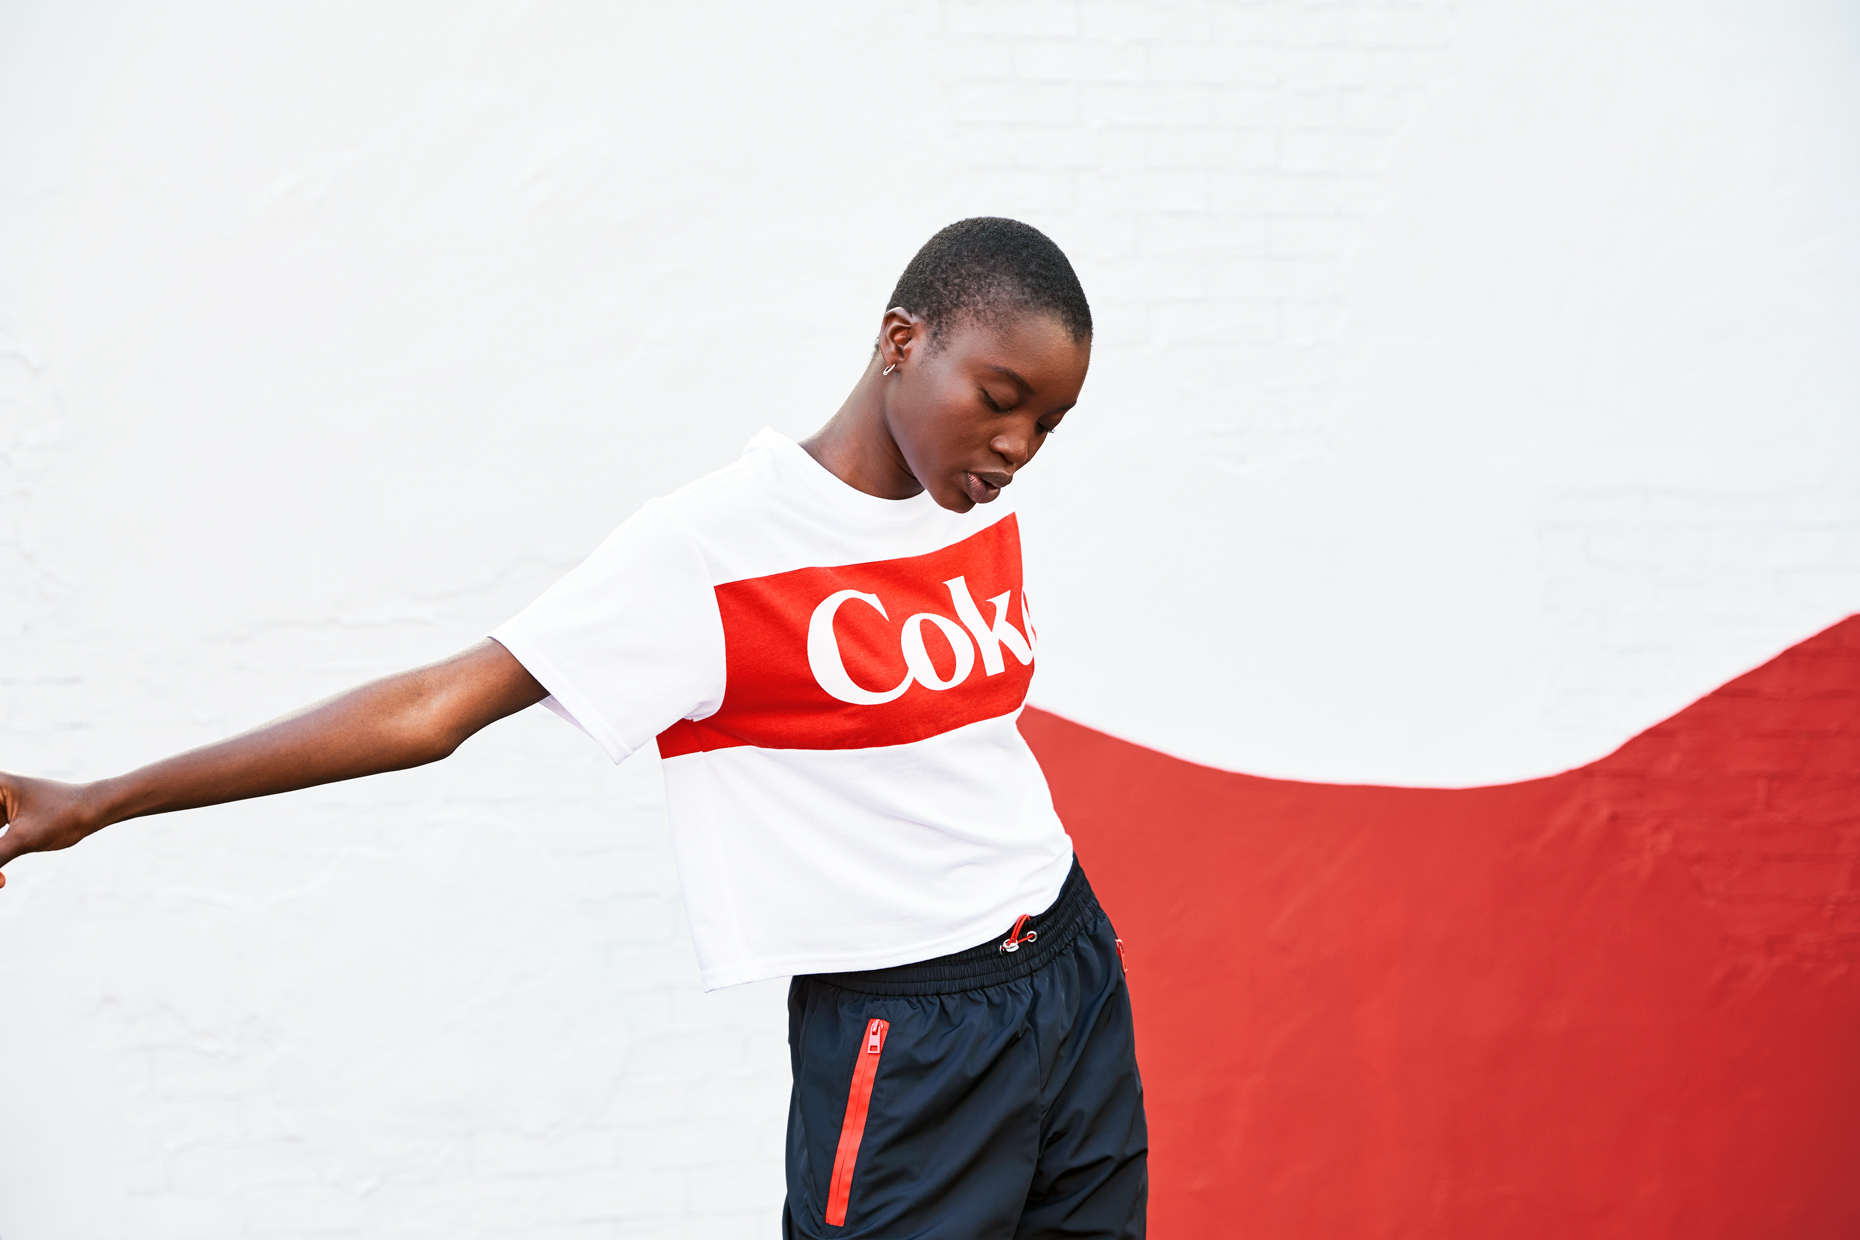 CocaCola_Colorblock_RedCoke_Tee_0236